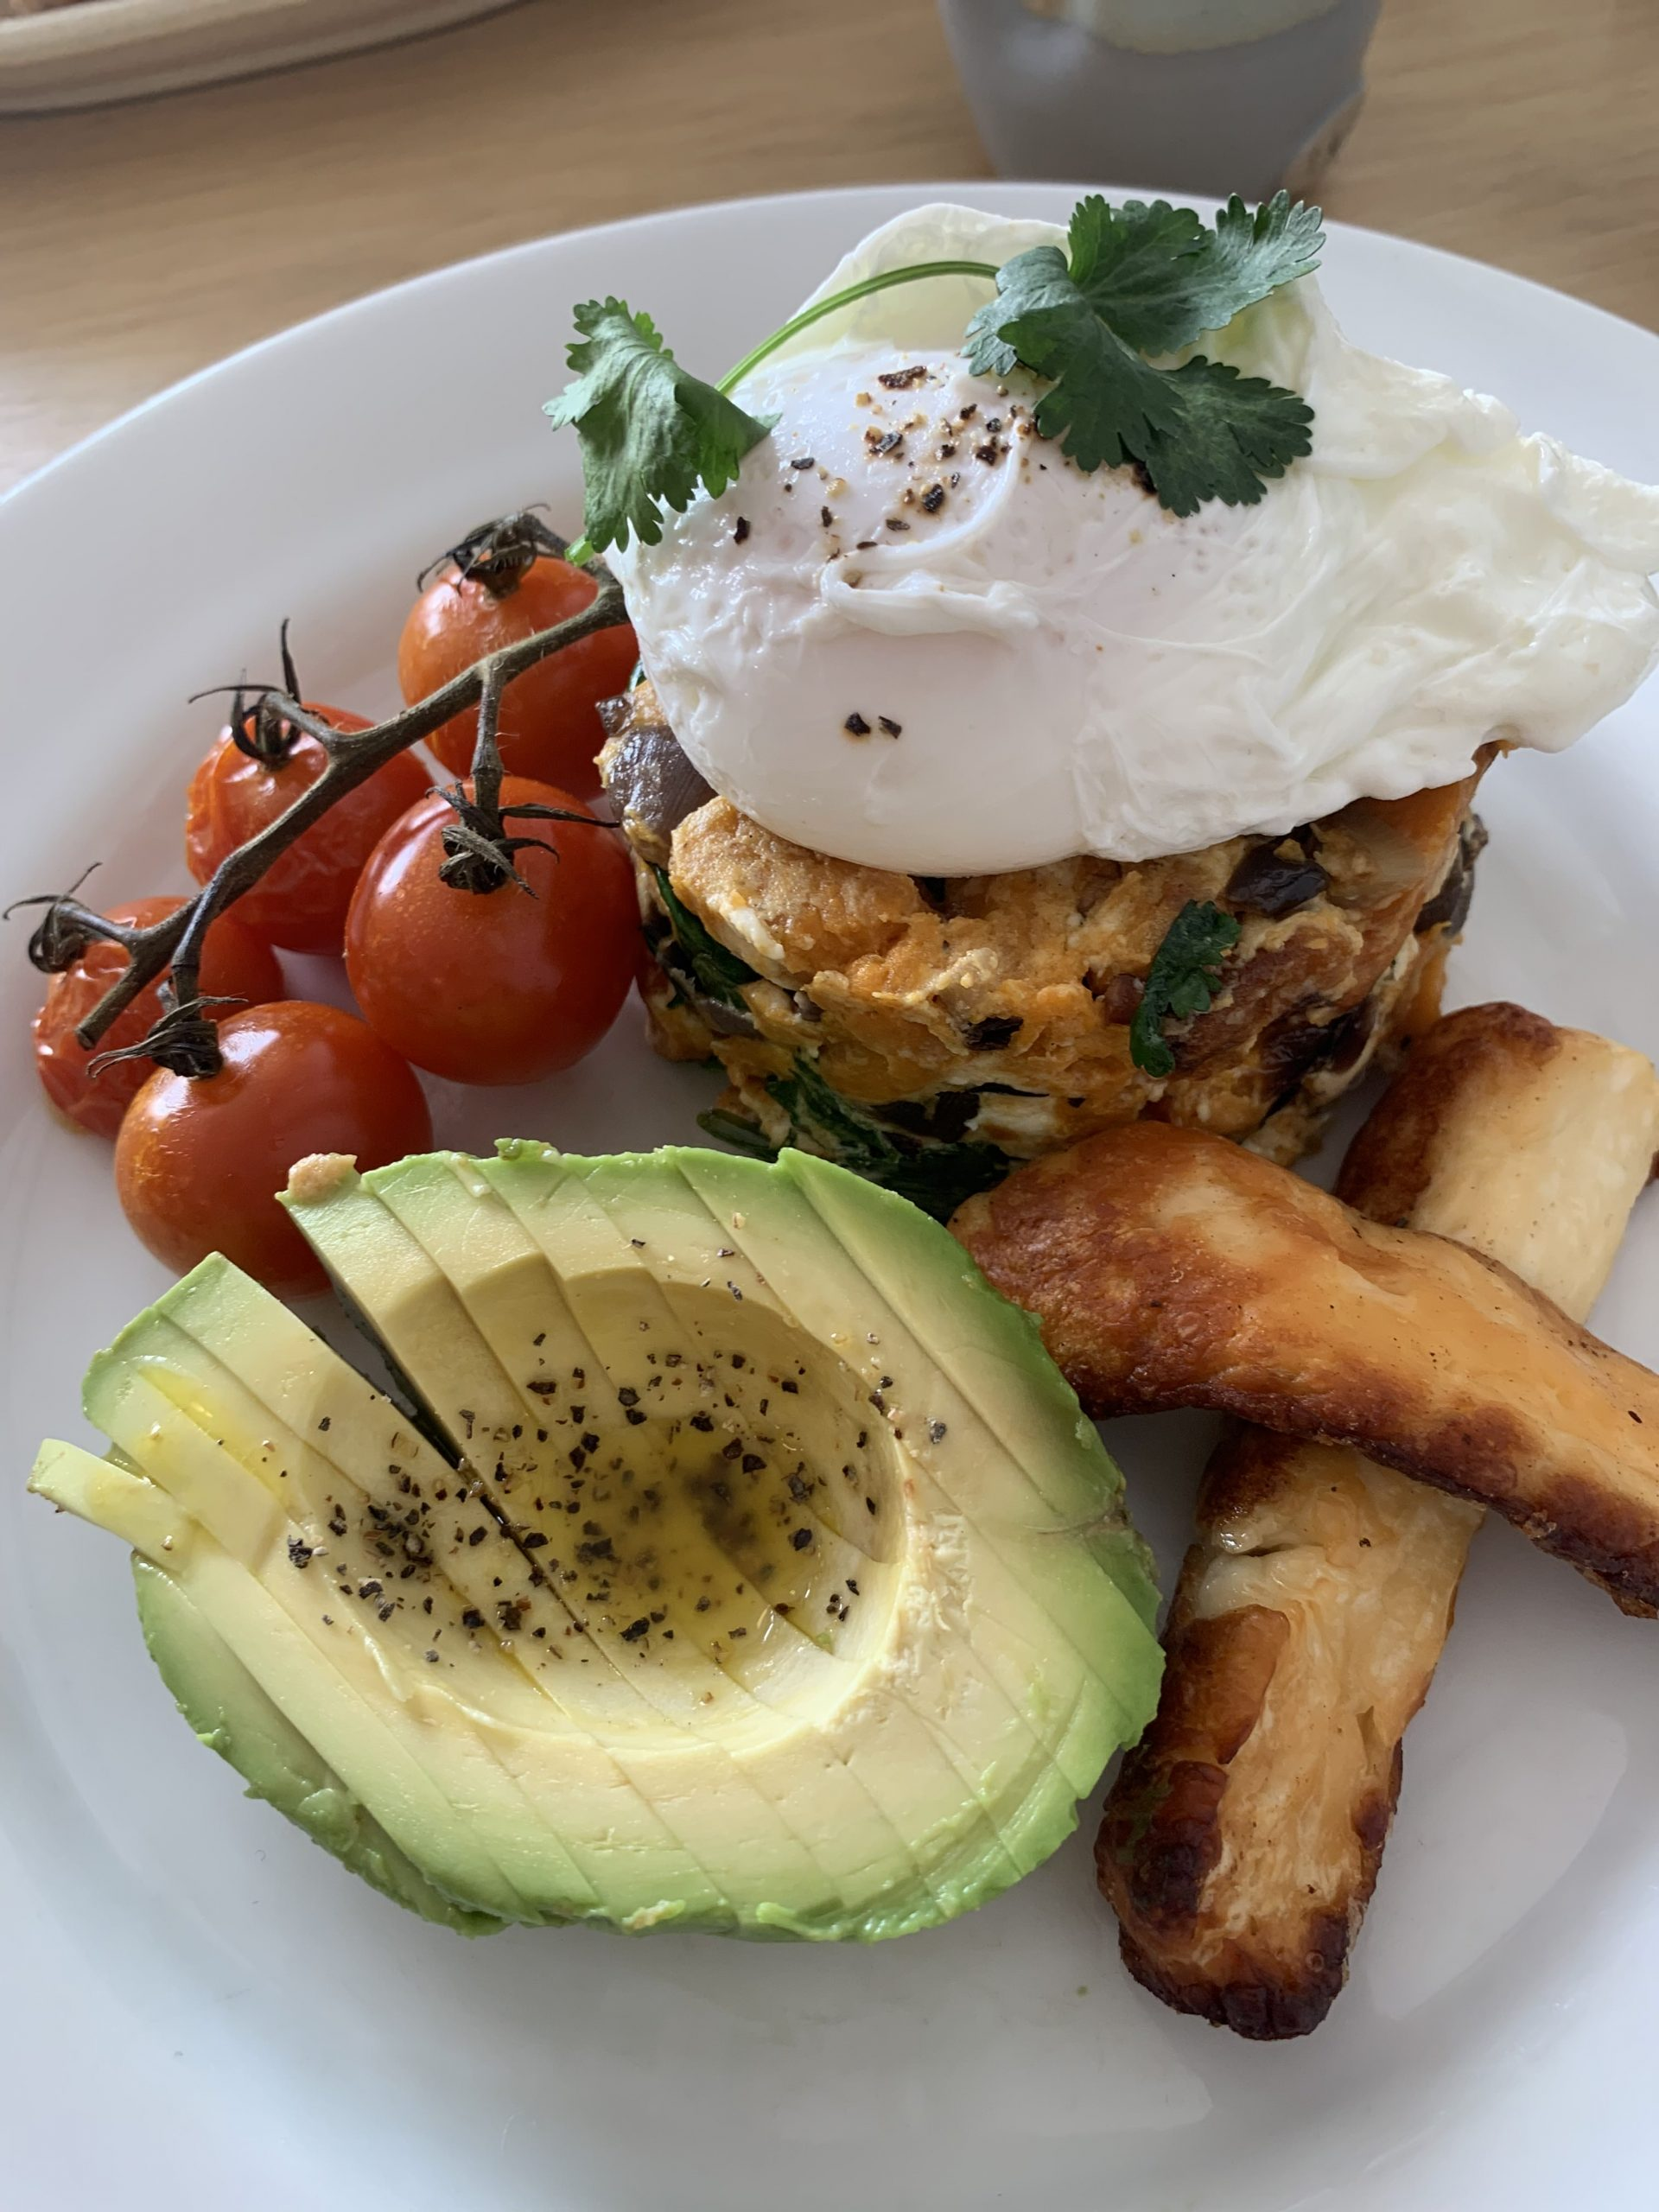 Treacle & ginger brunch review